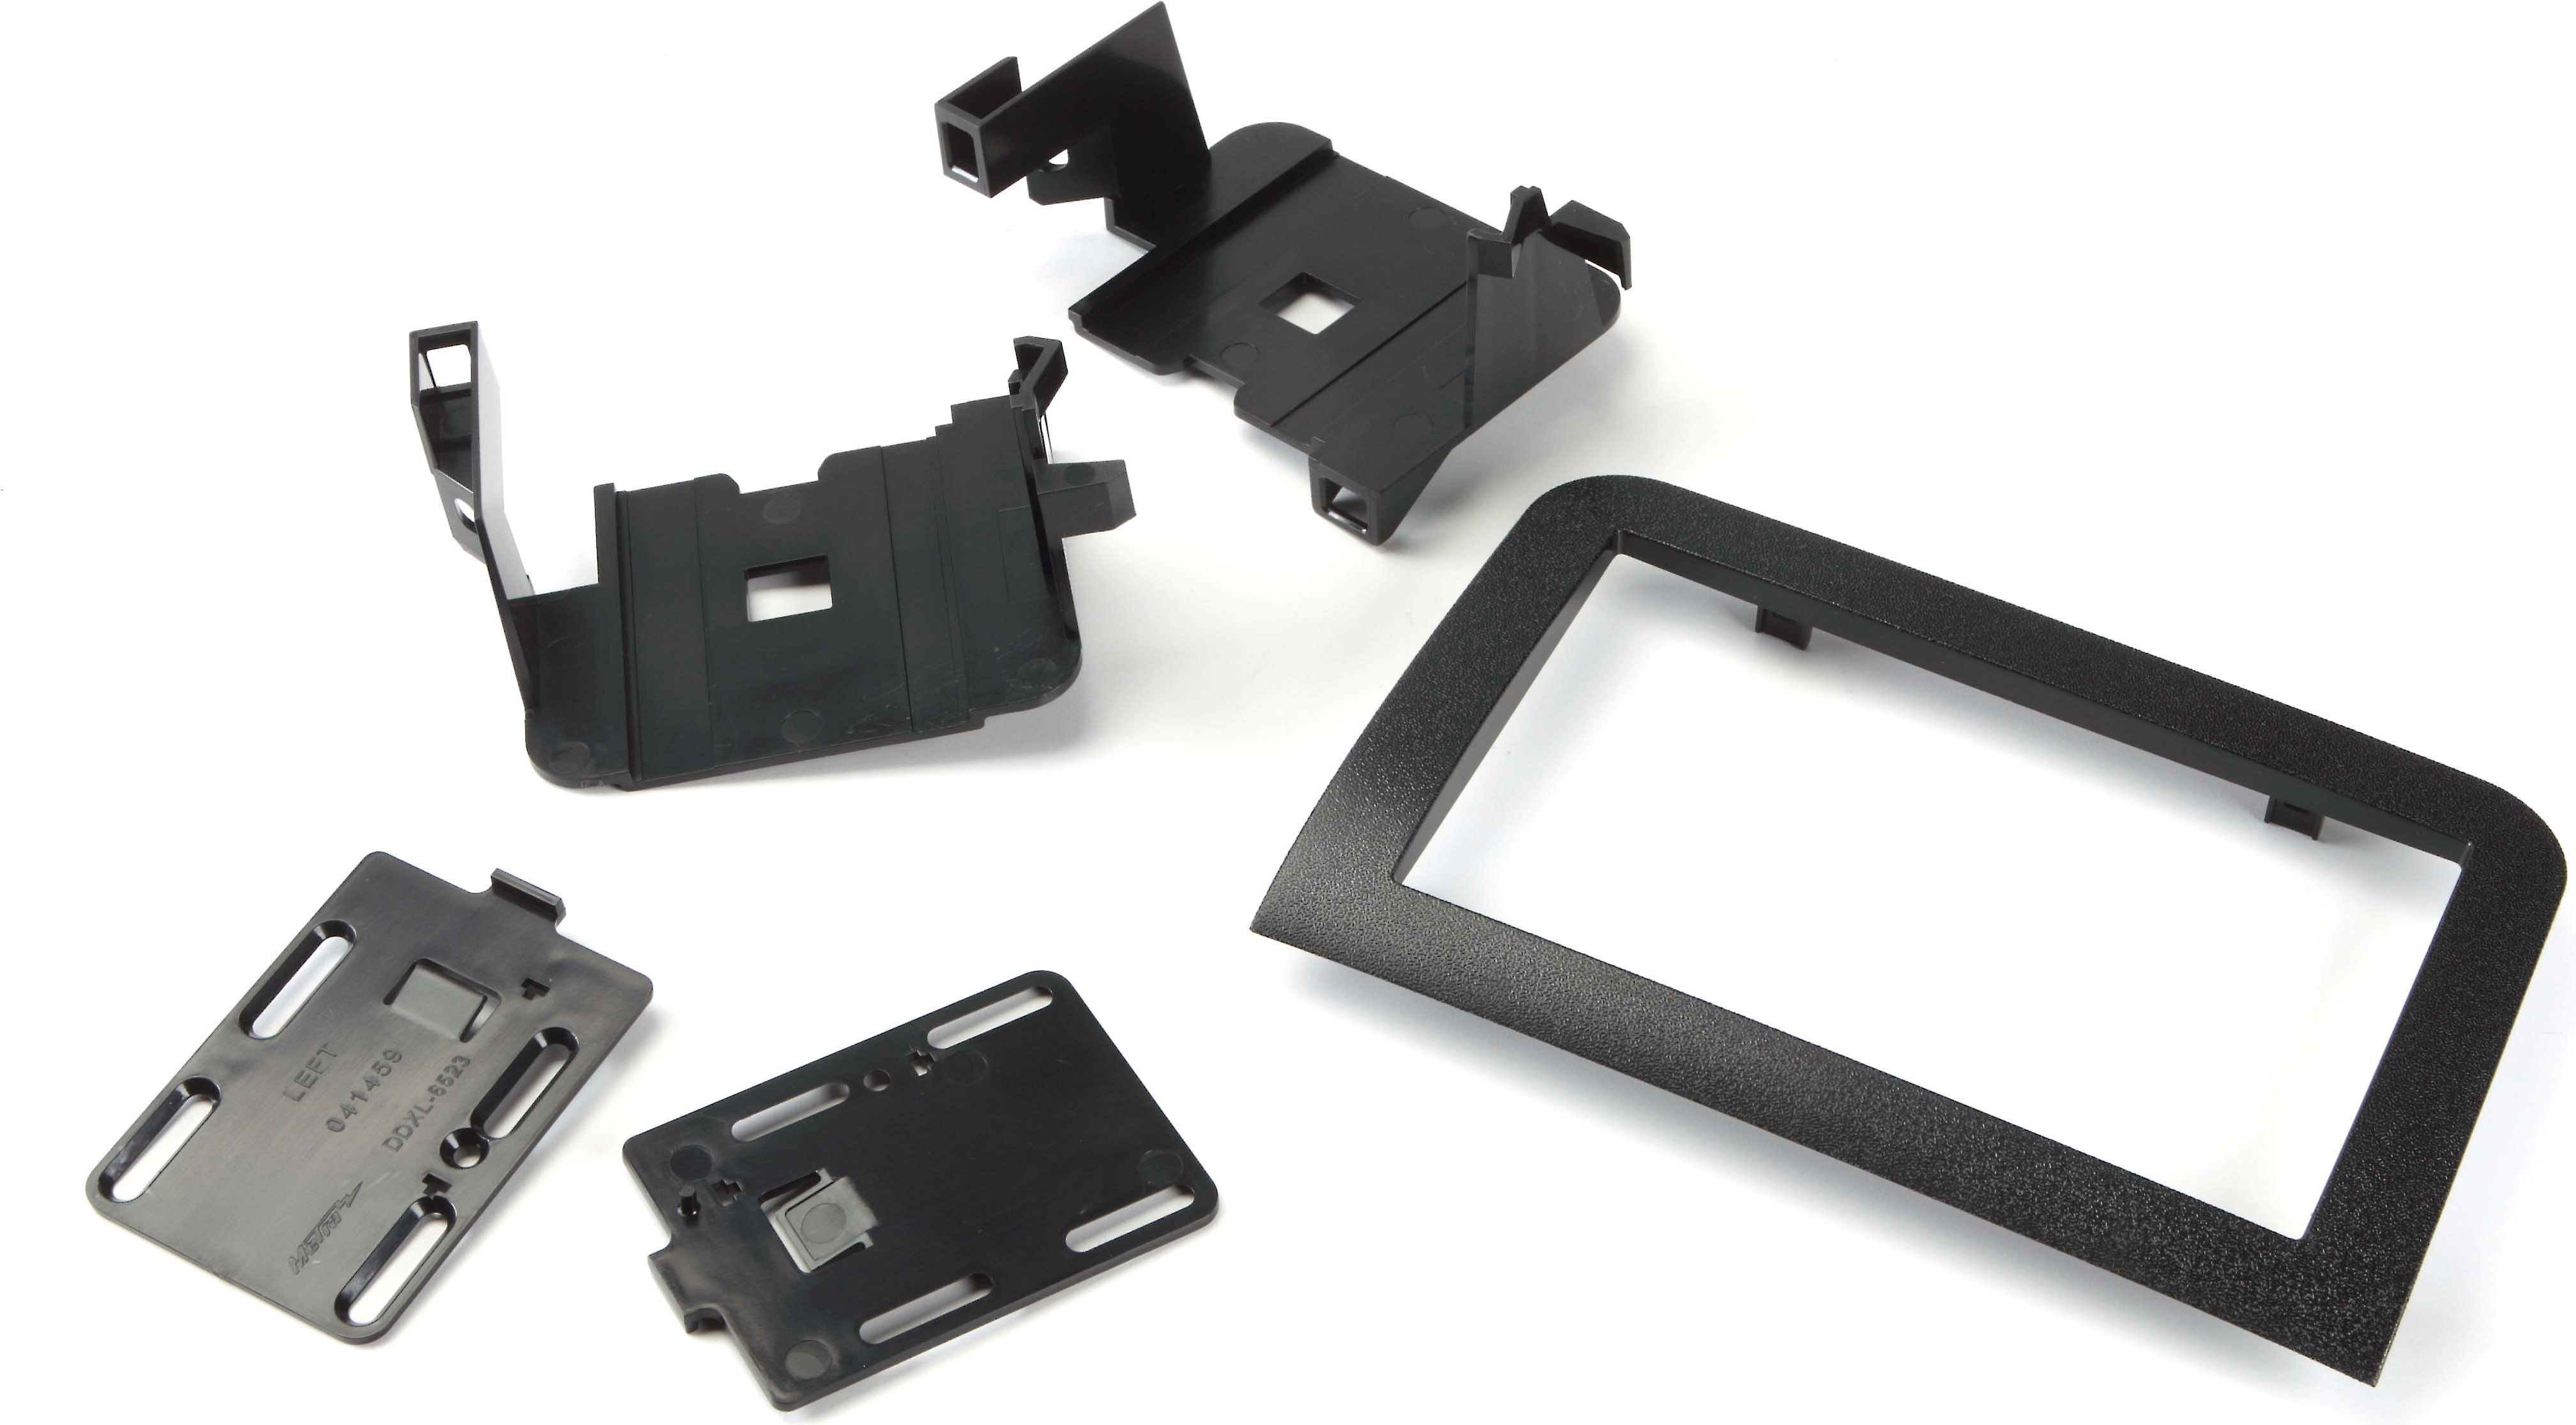 Metra 95-6523 Double DIN Stereo Installation Dash Kit for 2014-up Ram Promaster